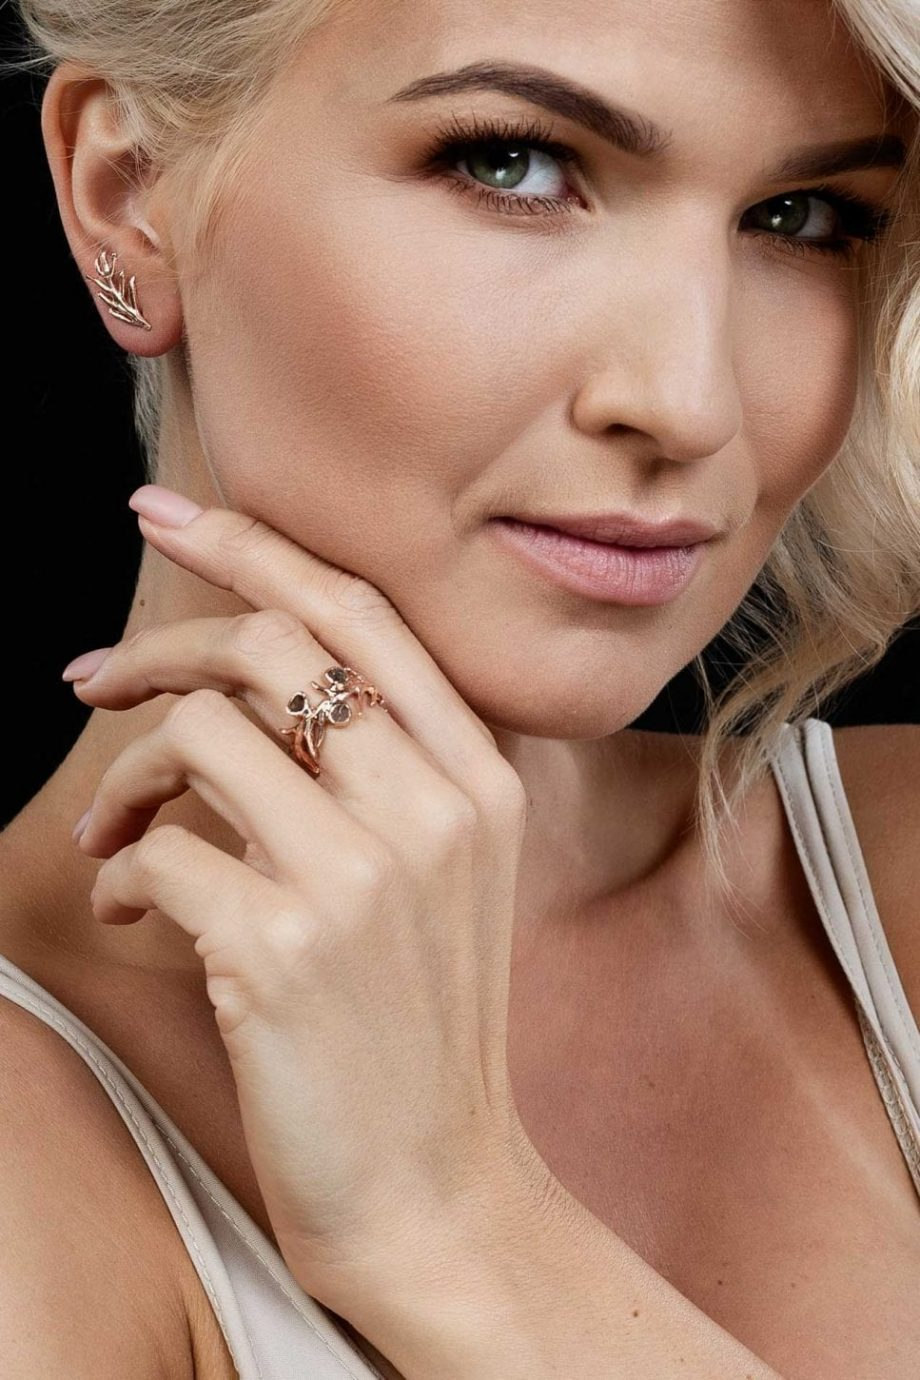 Rose Gold, Earrings, Ring, Handemade jewelry